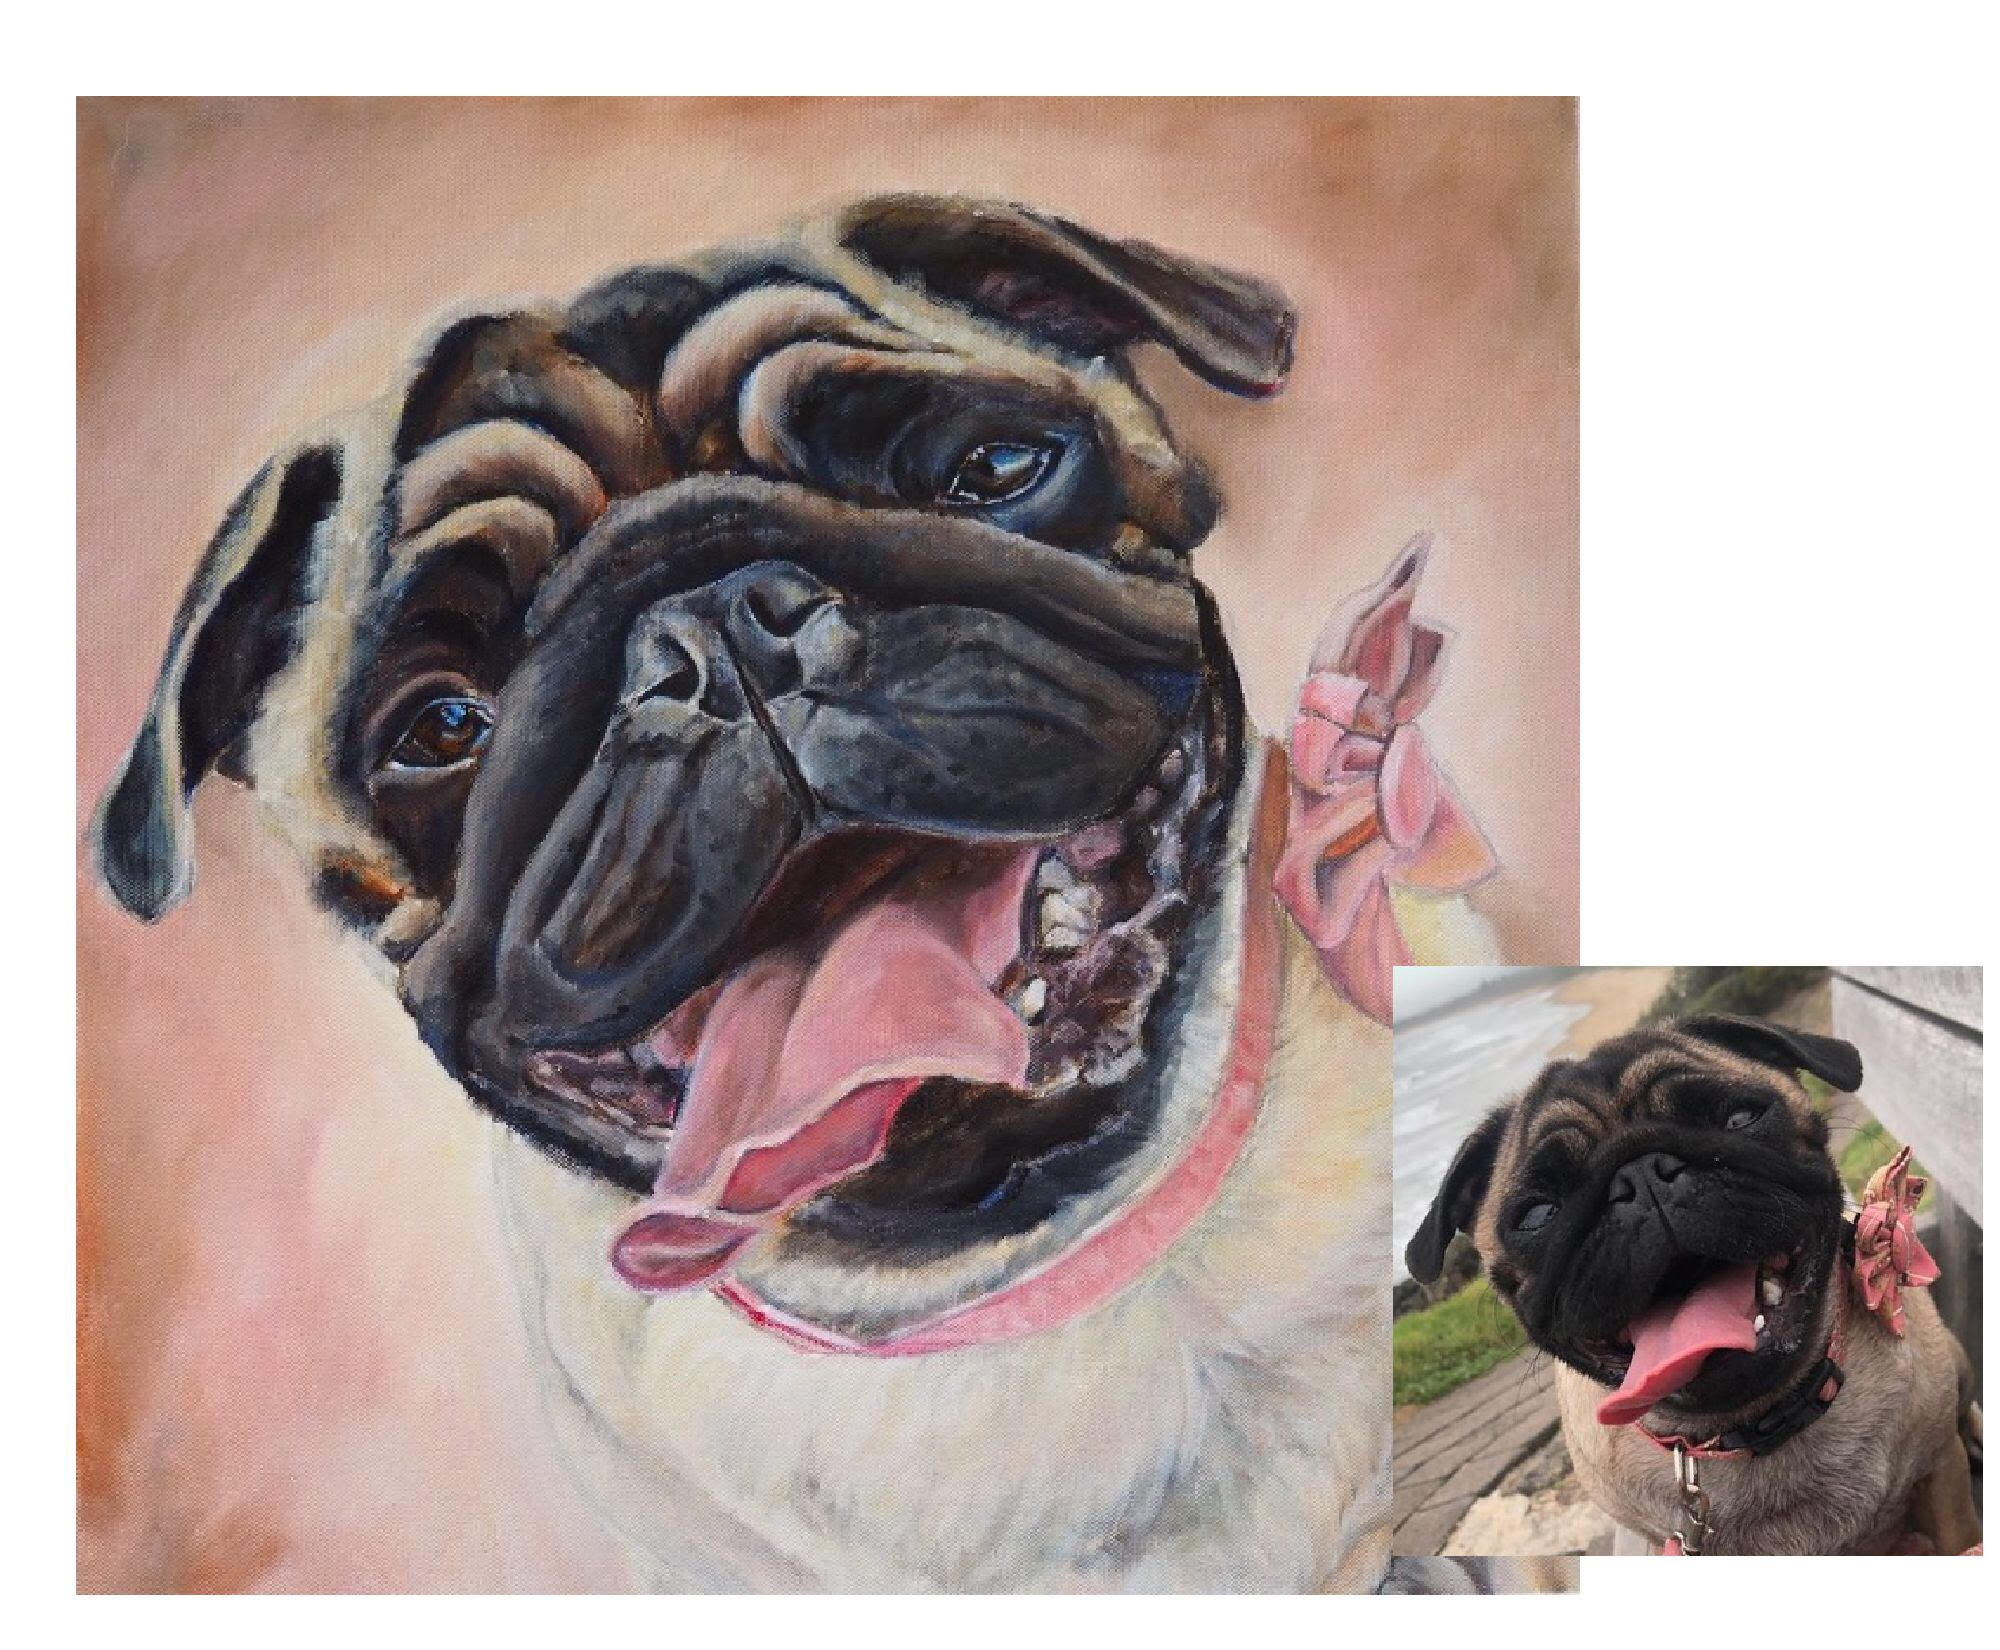 """""""Beyond Amazing! I can't believe how much it looks like Tilly"""" - Commissioned by Hayley for her MumAcrylic and oil on canvas- 18"""" x 18""""Bellingen, NSW, Australia"""